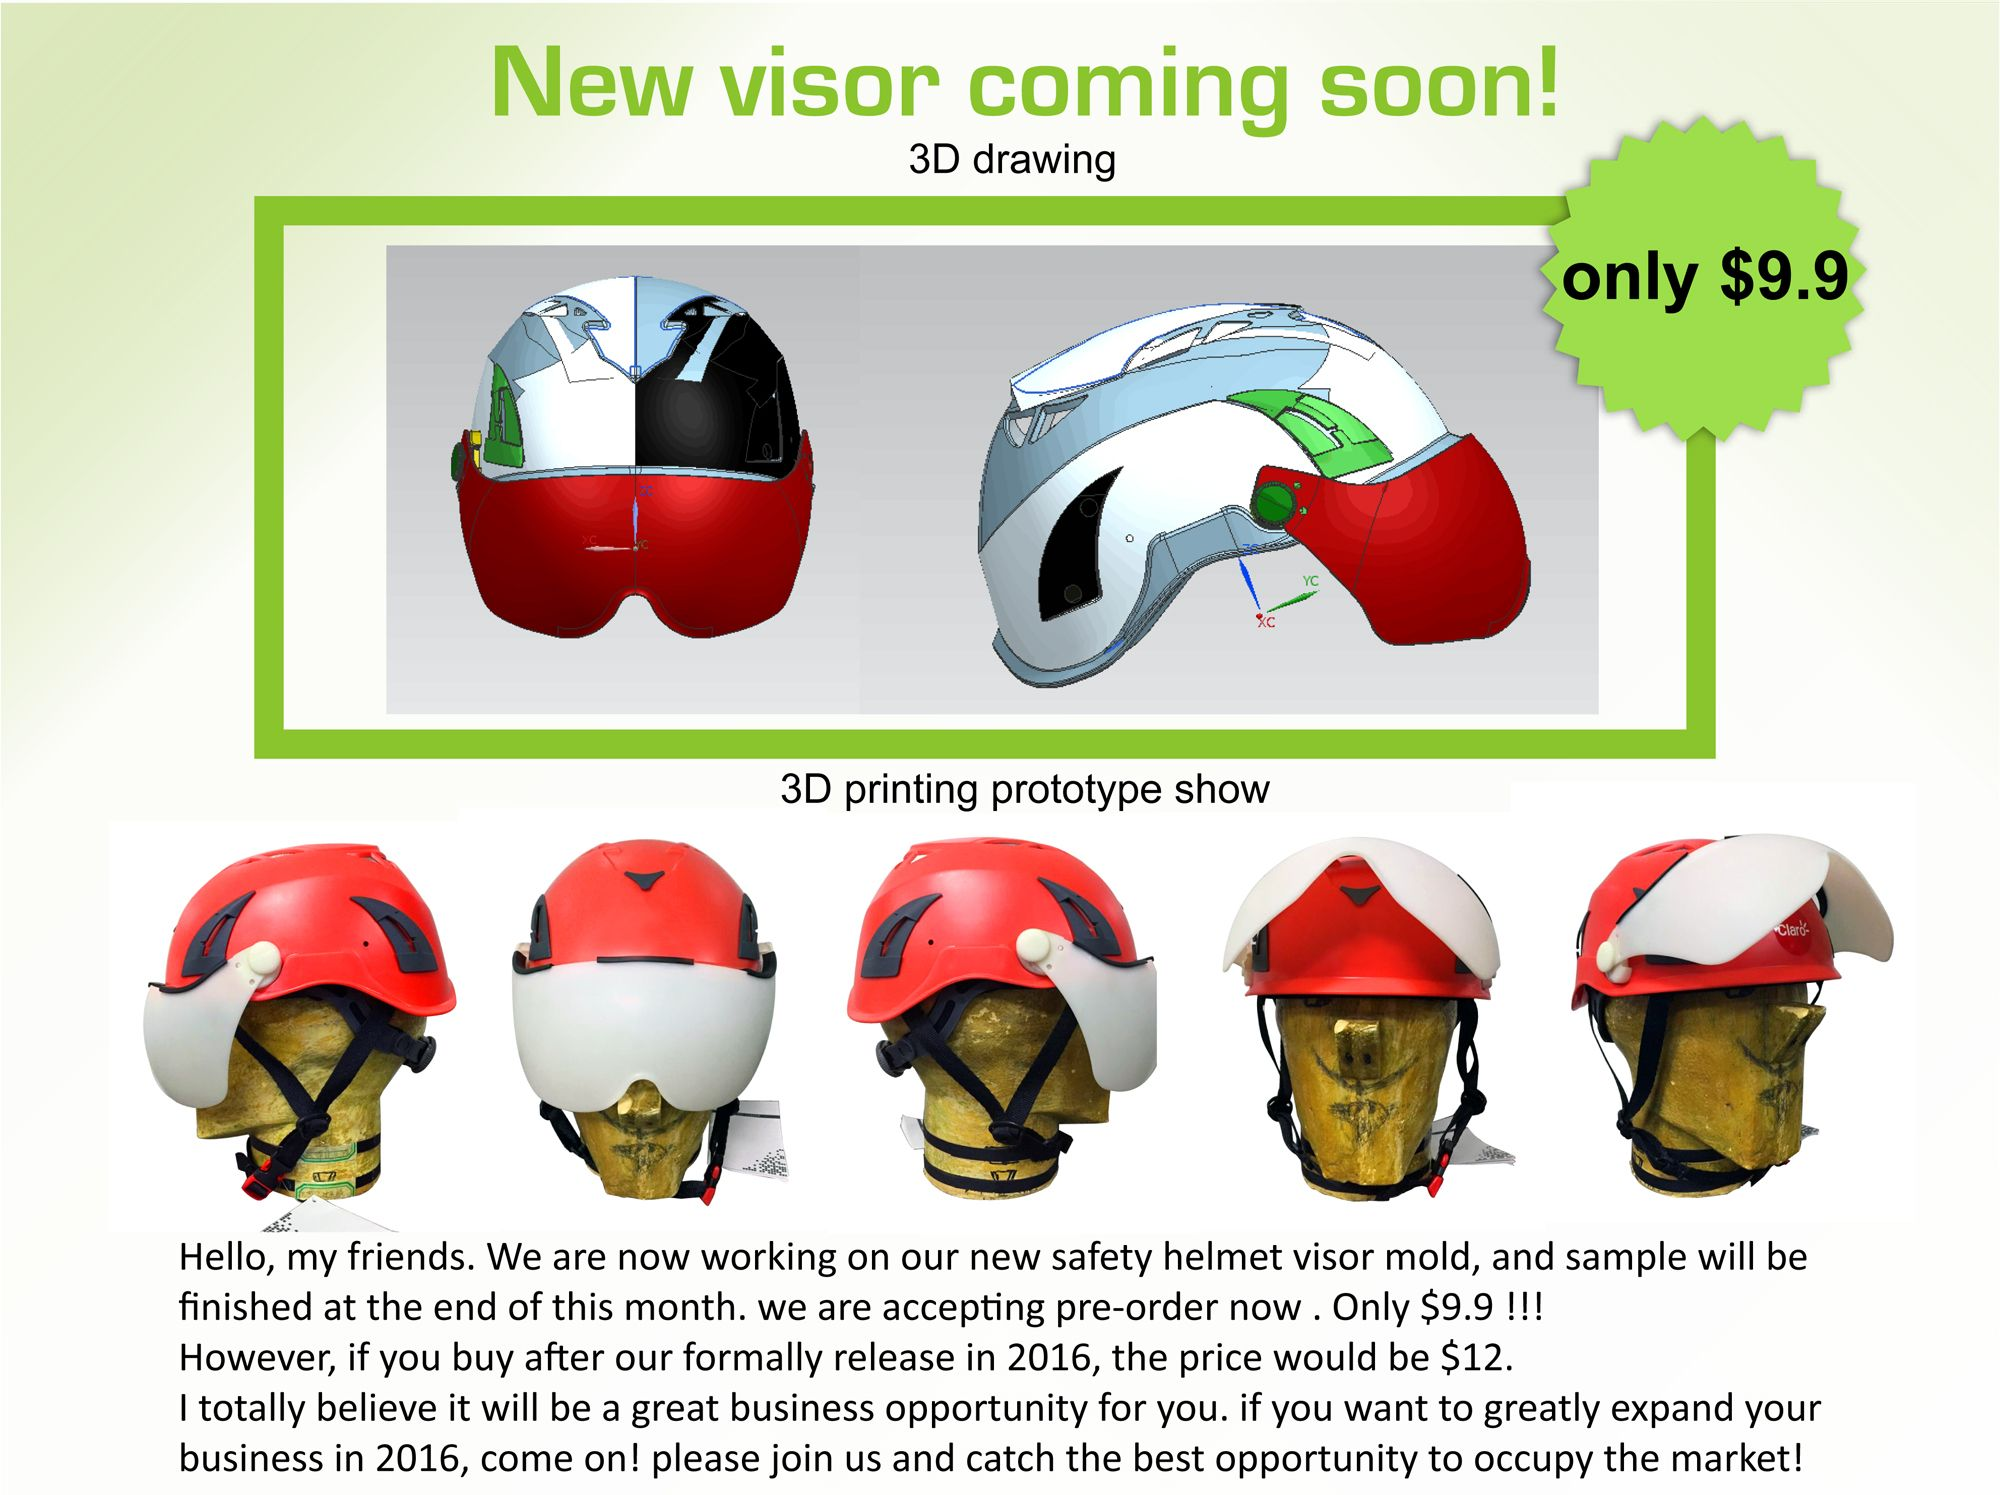 we are presale the new visor for the safety helmet before